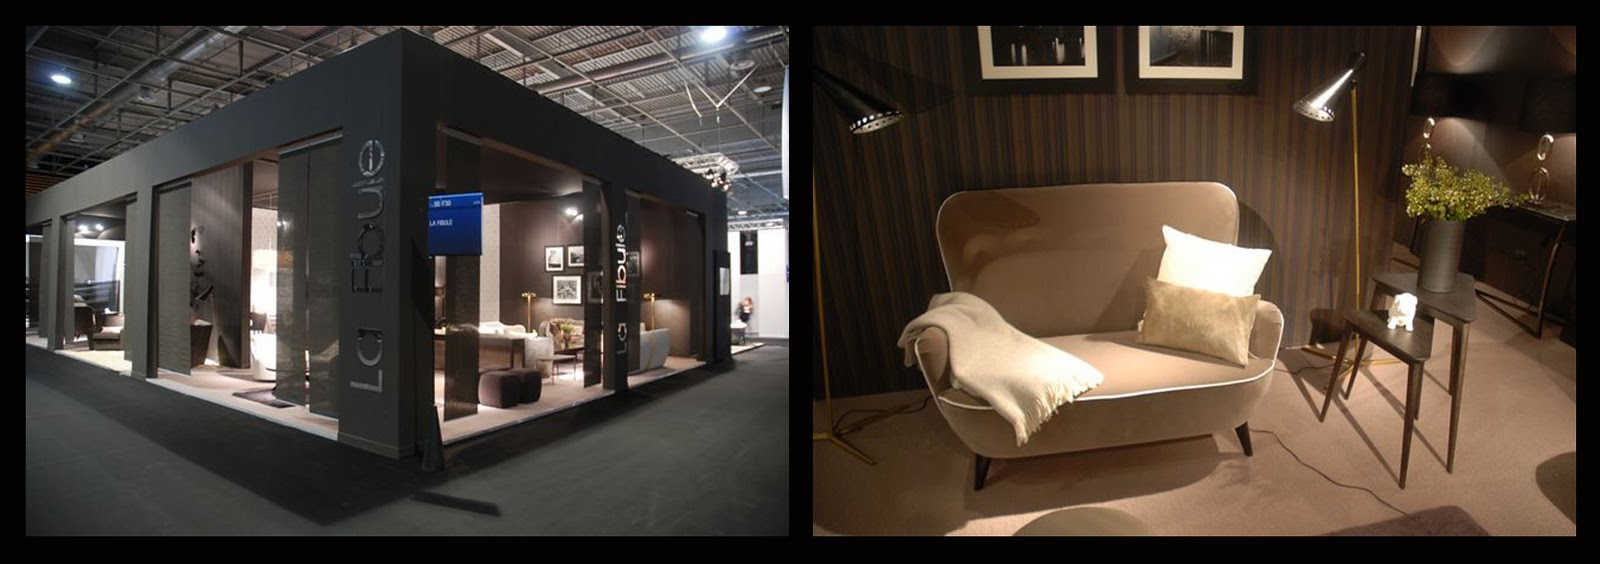 Black is great but black white is better hello peagreen - Maison et objet salon ...